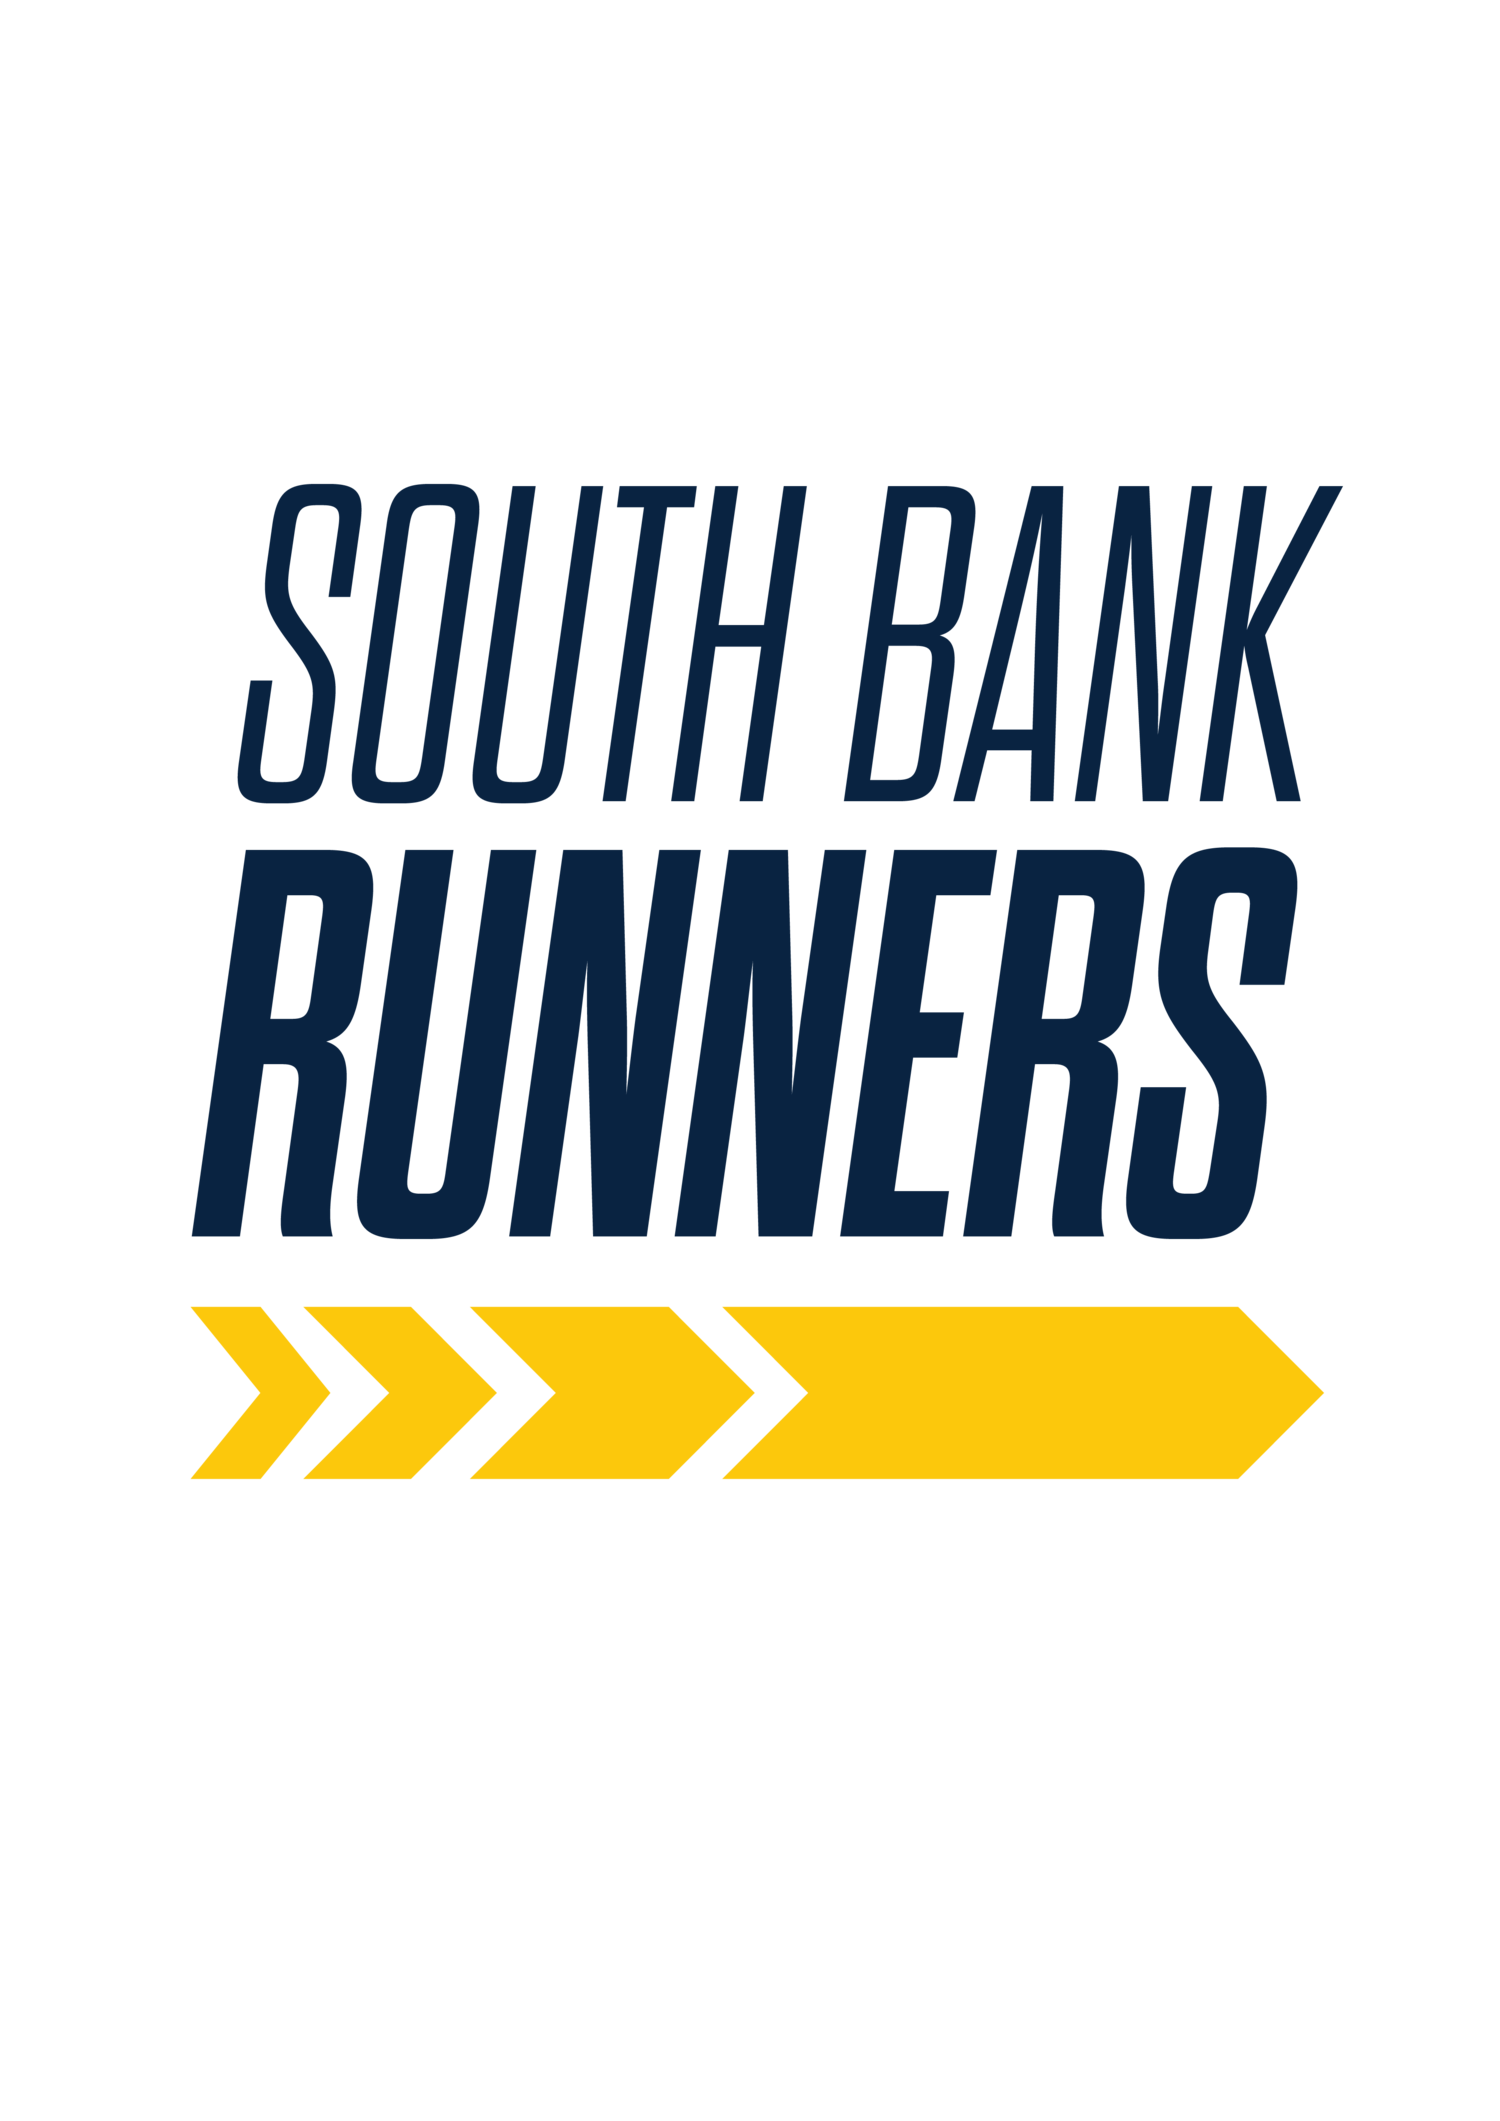 South Bank Runners